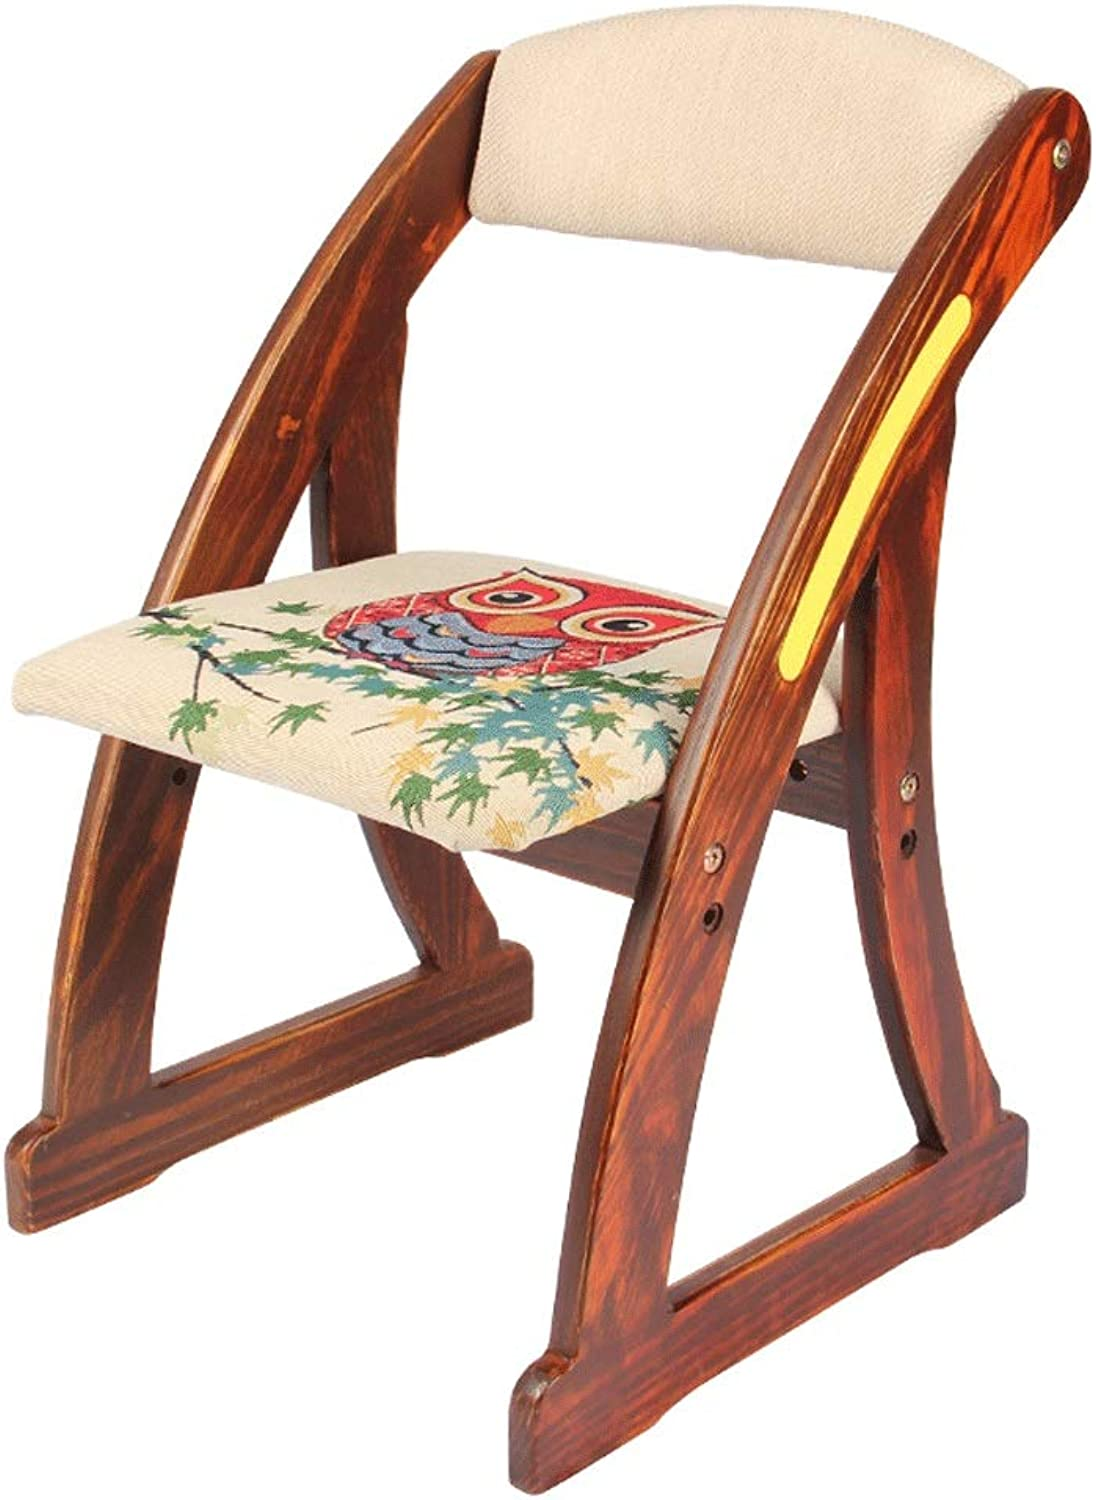 LifeX Retro color Solid Wood Square Footstool Wooden Dressing Backrest Chair Ethnic Pattern Change shoes Bench Baby Adult Sofa Stool Kids Armchair Kitchen Rectangle Seat Can Lift (color   Style B)